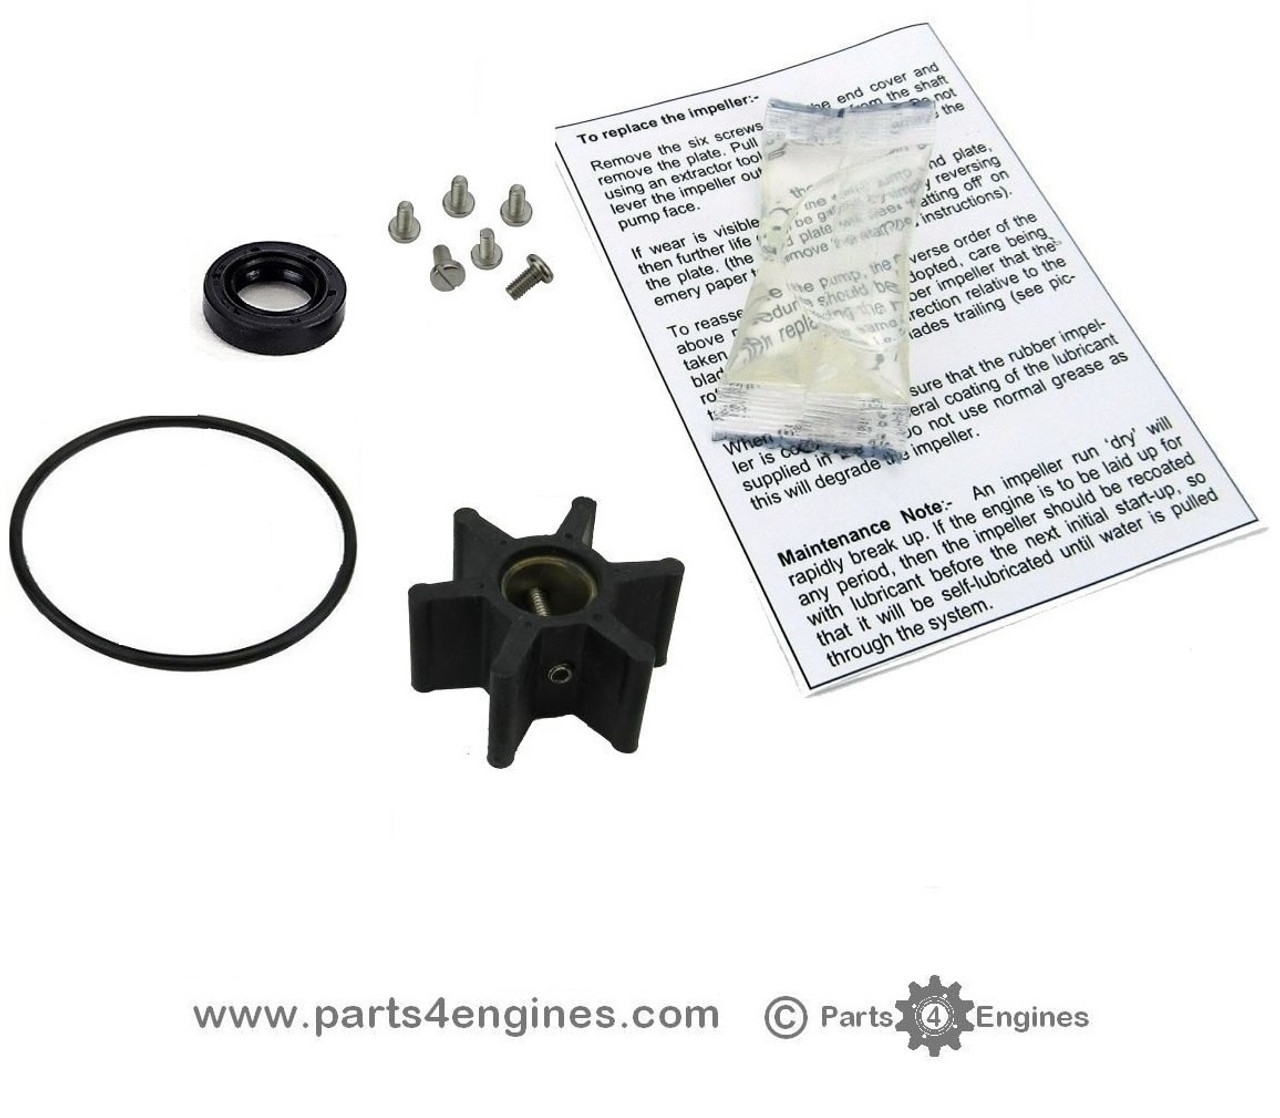 Yanmar 3YM20 Raw water pump service kit - parts4engines.com